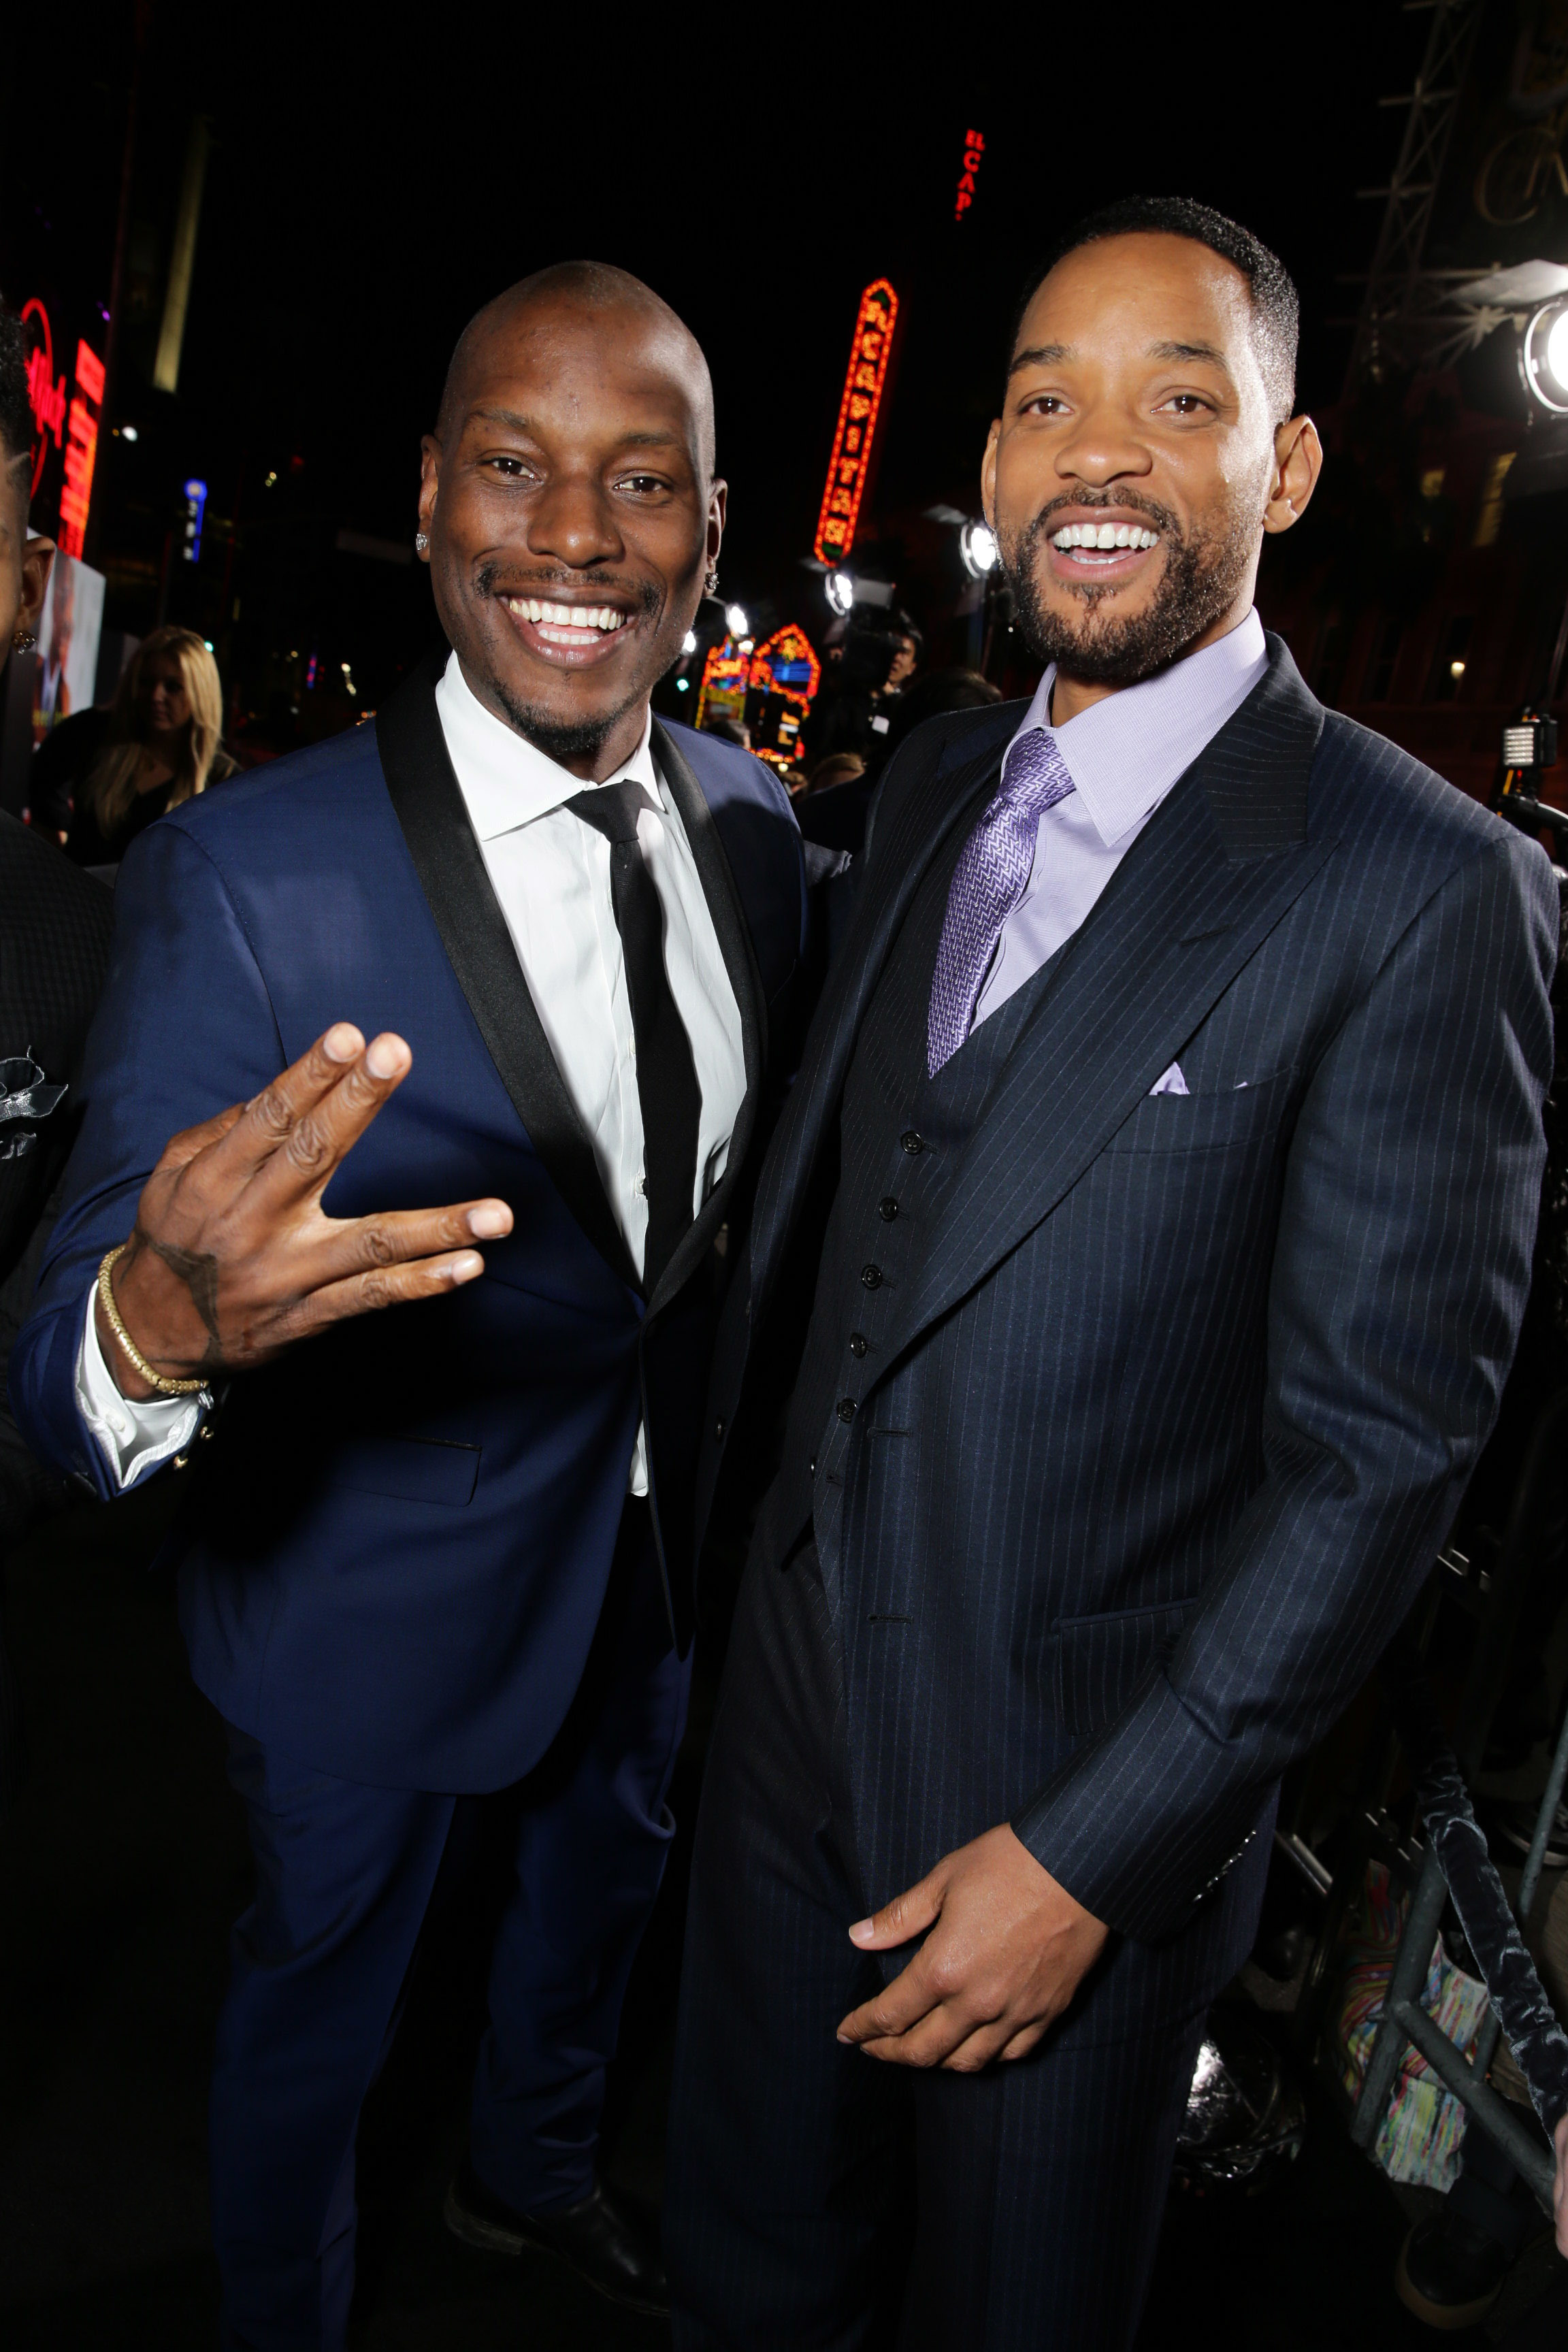 """Tyrese Gibson and Will Smith attend the premiere of """"Focus"""" in Los Angeles on Feb. 24, 2015."""